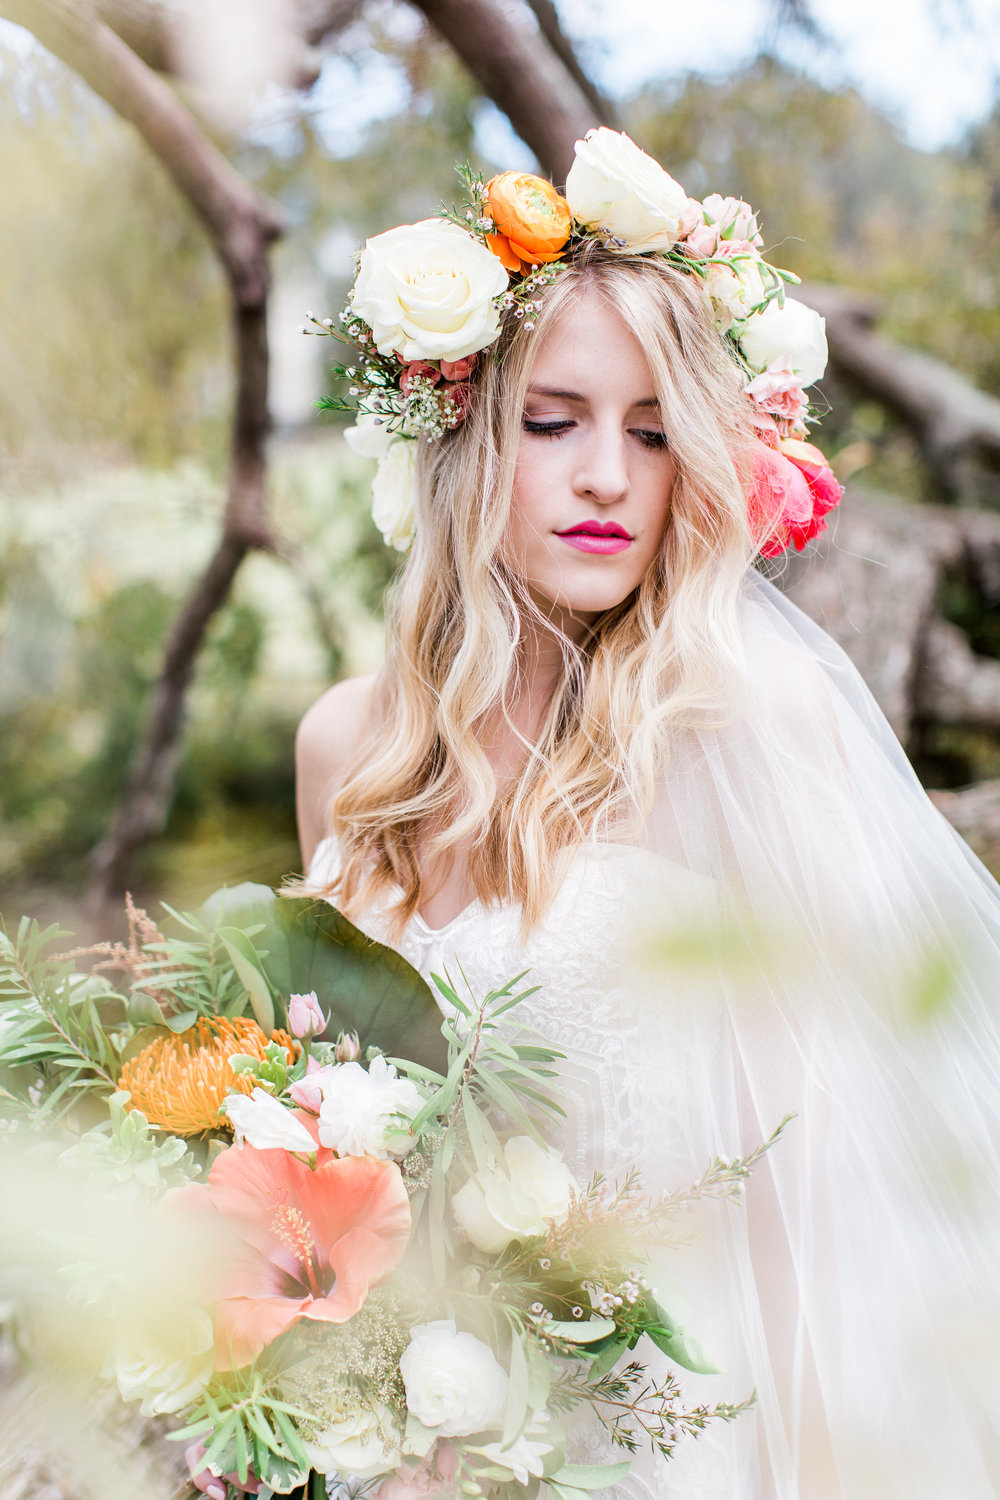 AptBPhoto_IvoryBeau_FallenTrees-fredericka-by-maggie-sottero-ivory-and-beau-savannah-bridal-boutique-savannah-wedding-dresses-jaclyn-jordan-veil-flower-crown-savannah-wedding-florist.jpg